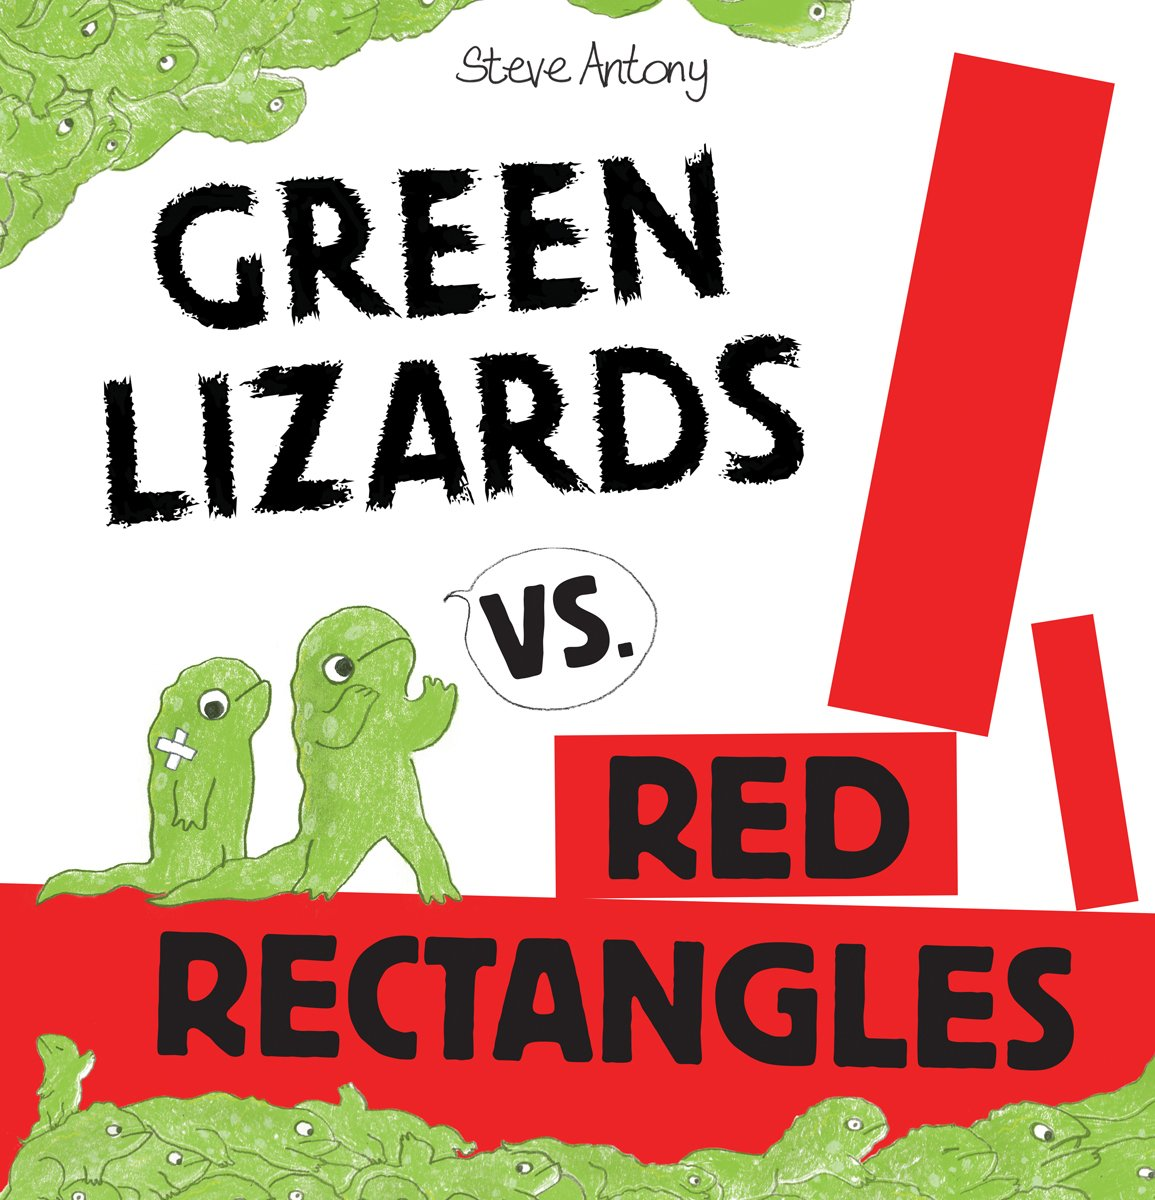 Image result for green lizards vs red rectangles